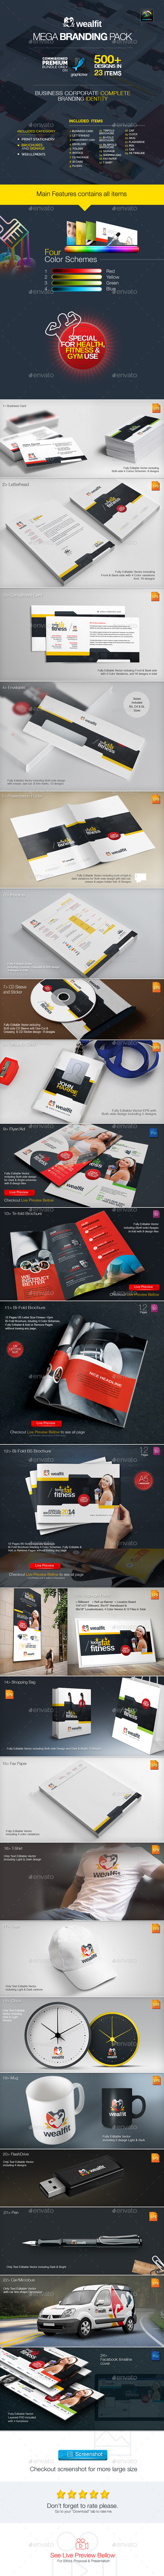 GraphicRiver WealFit Fitness Gym Branding Identity Pack 10026113